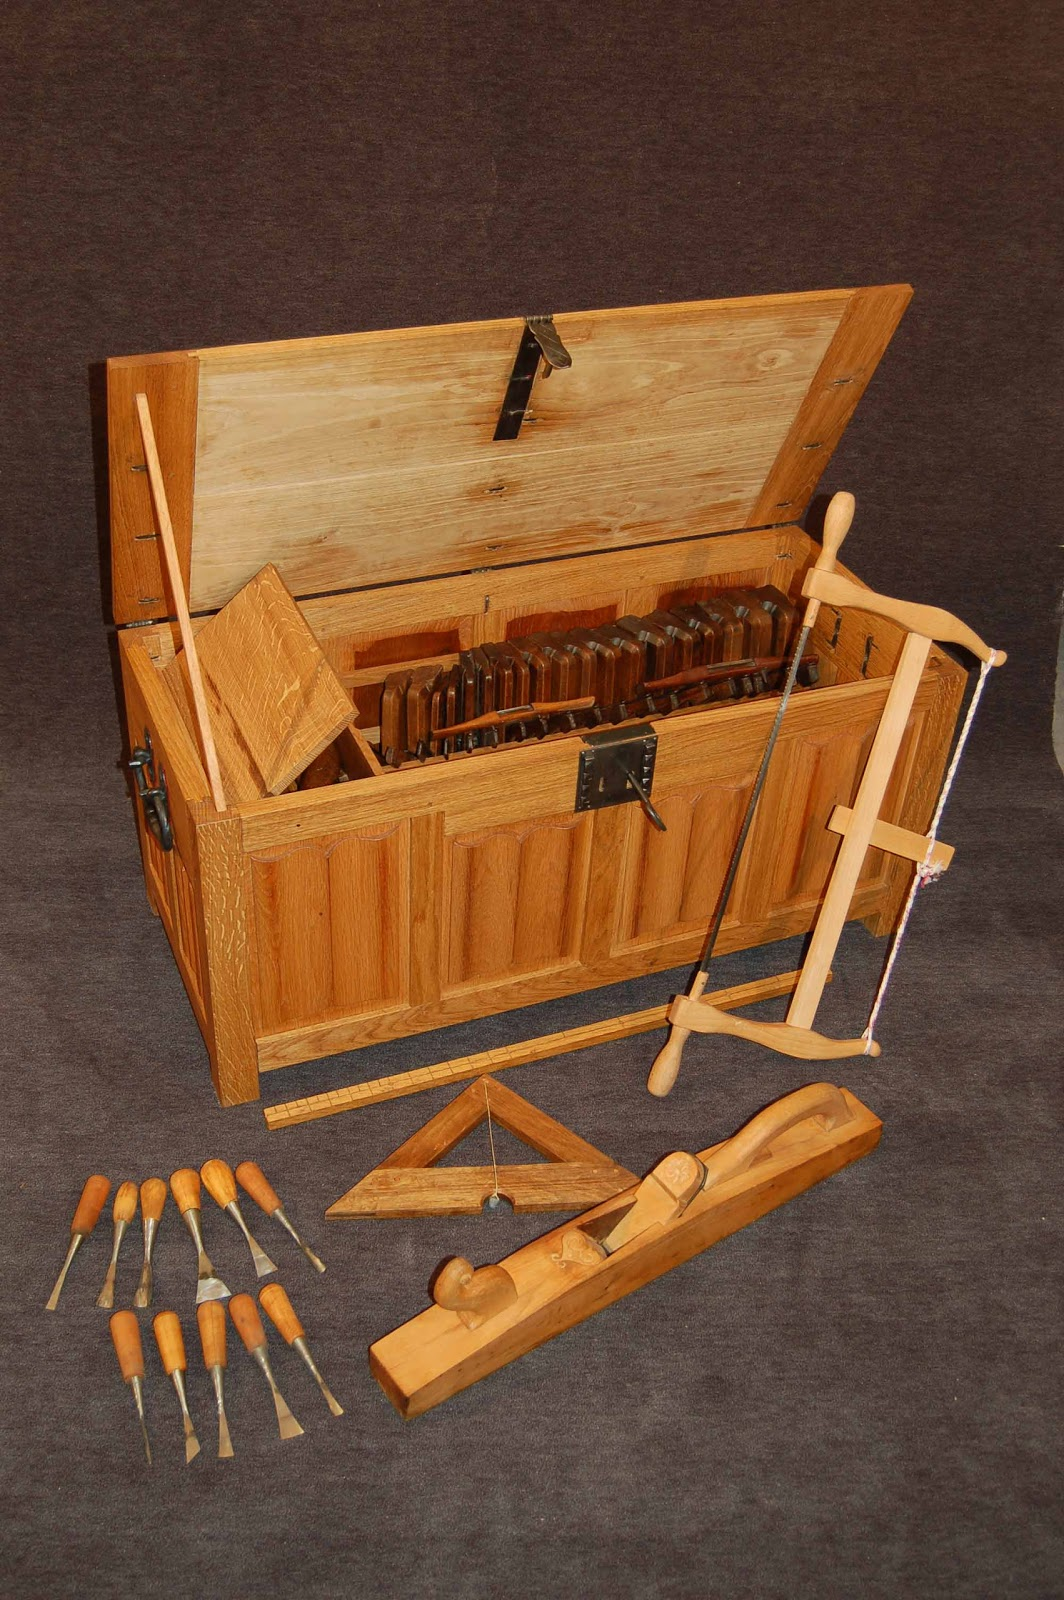 The medieval woodworkers toolbox